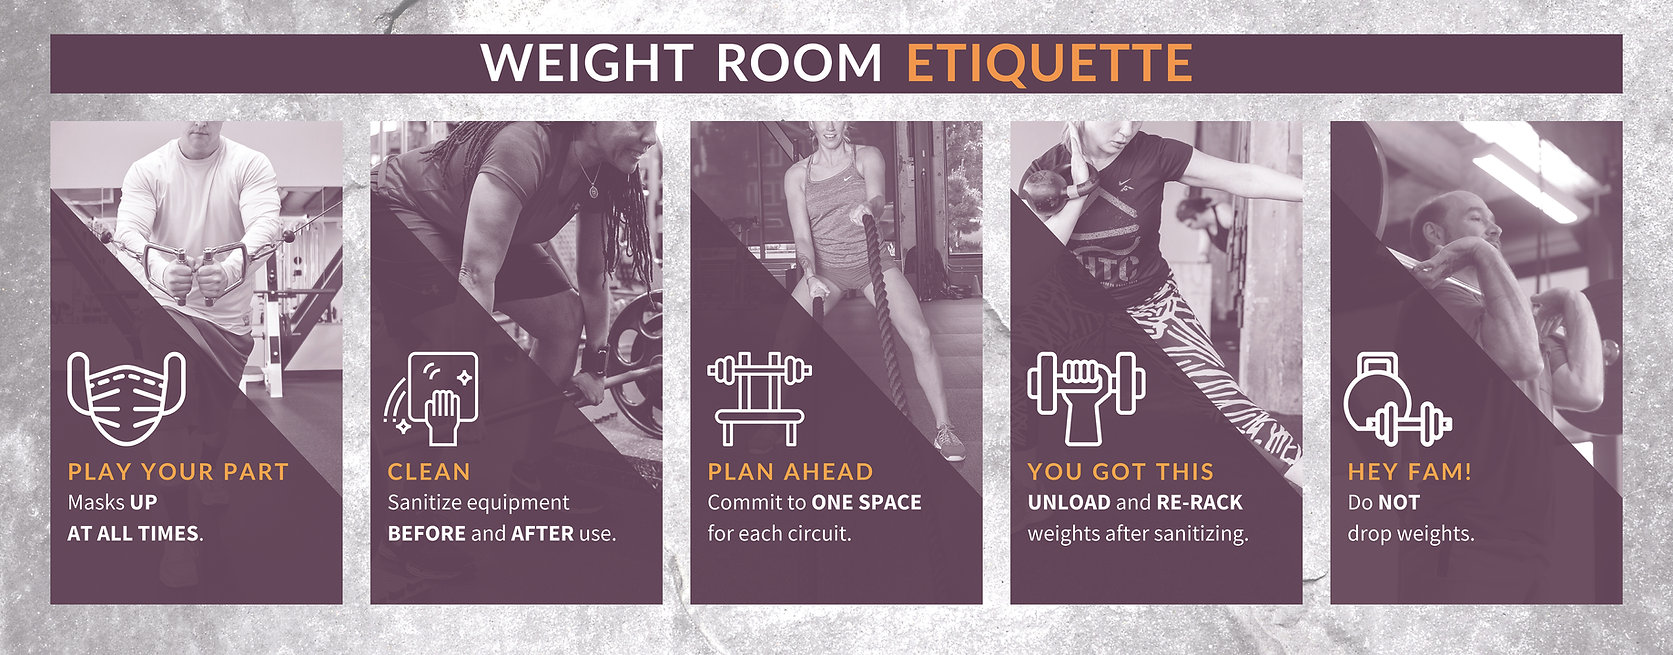 Weight Room Etiquette - SMALL.jpg